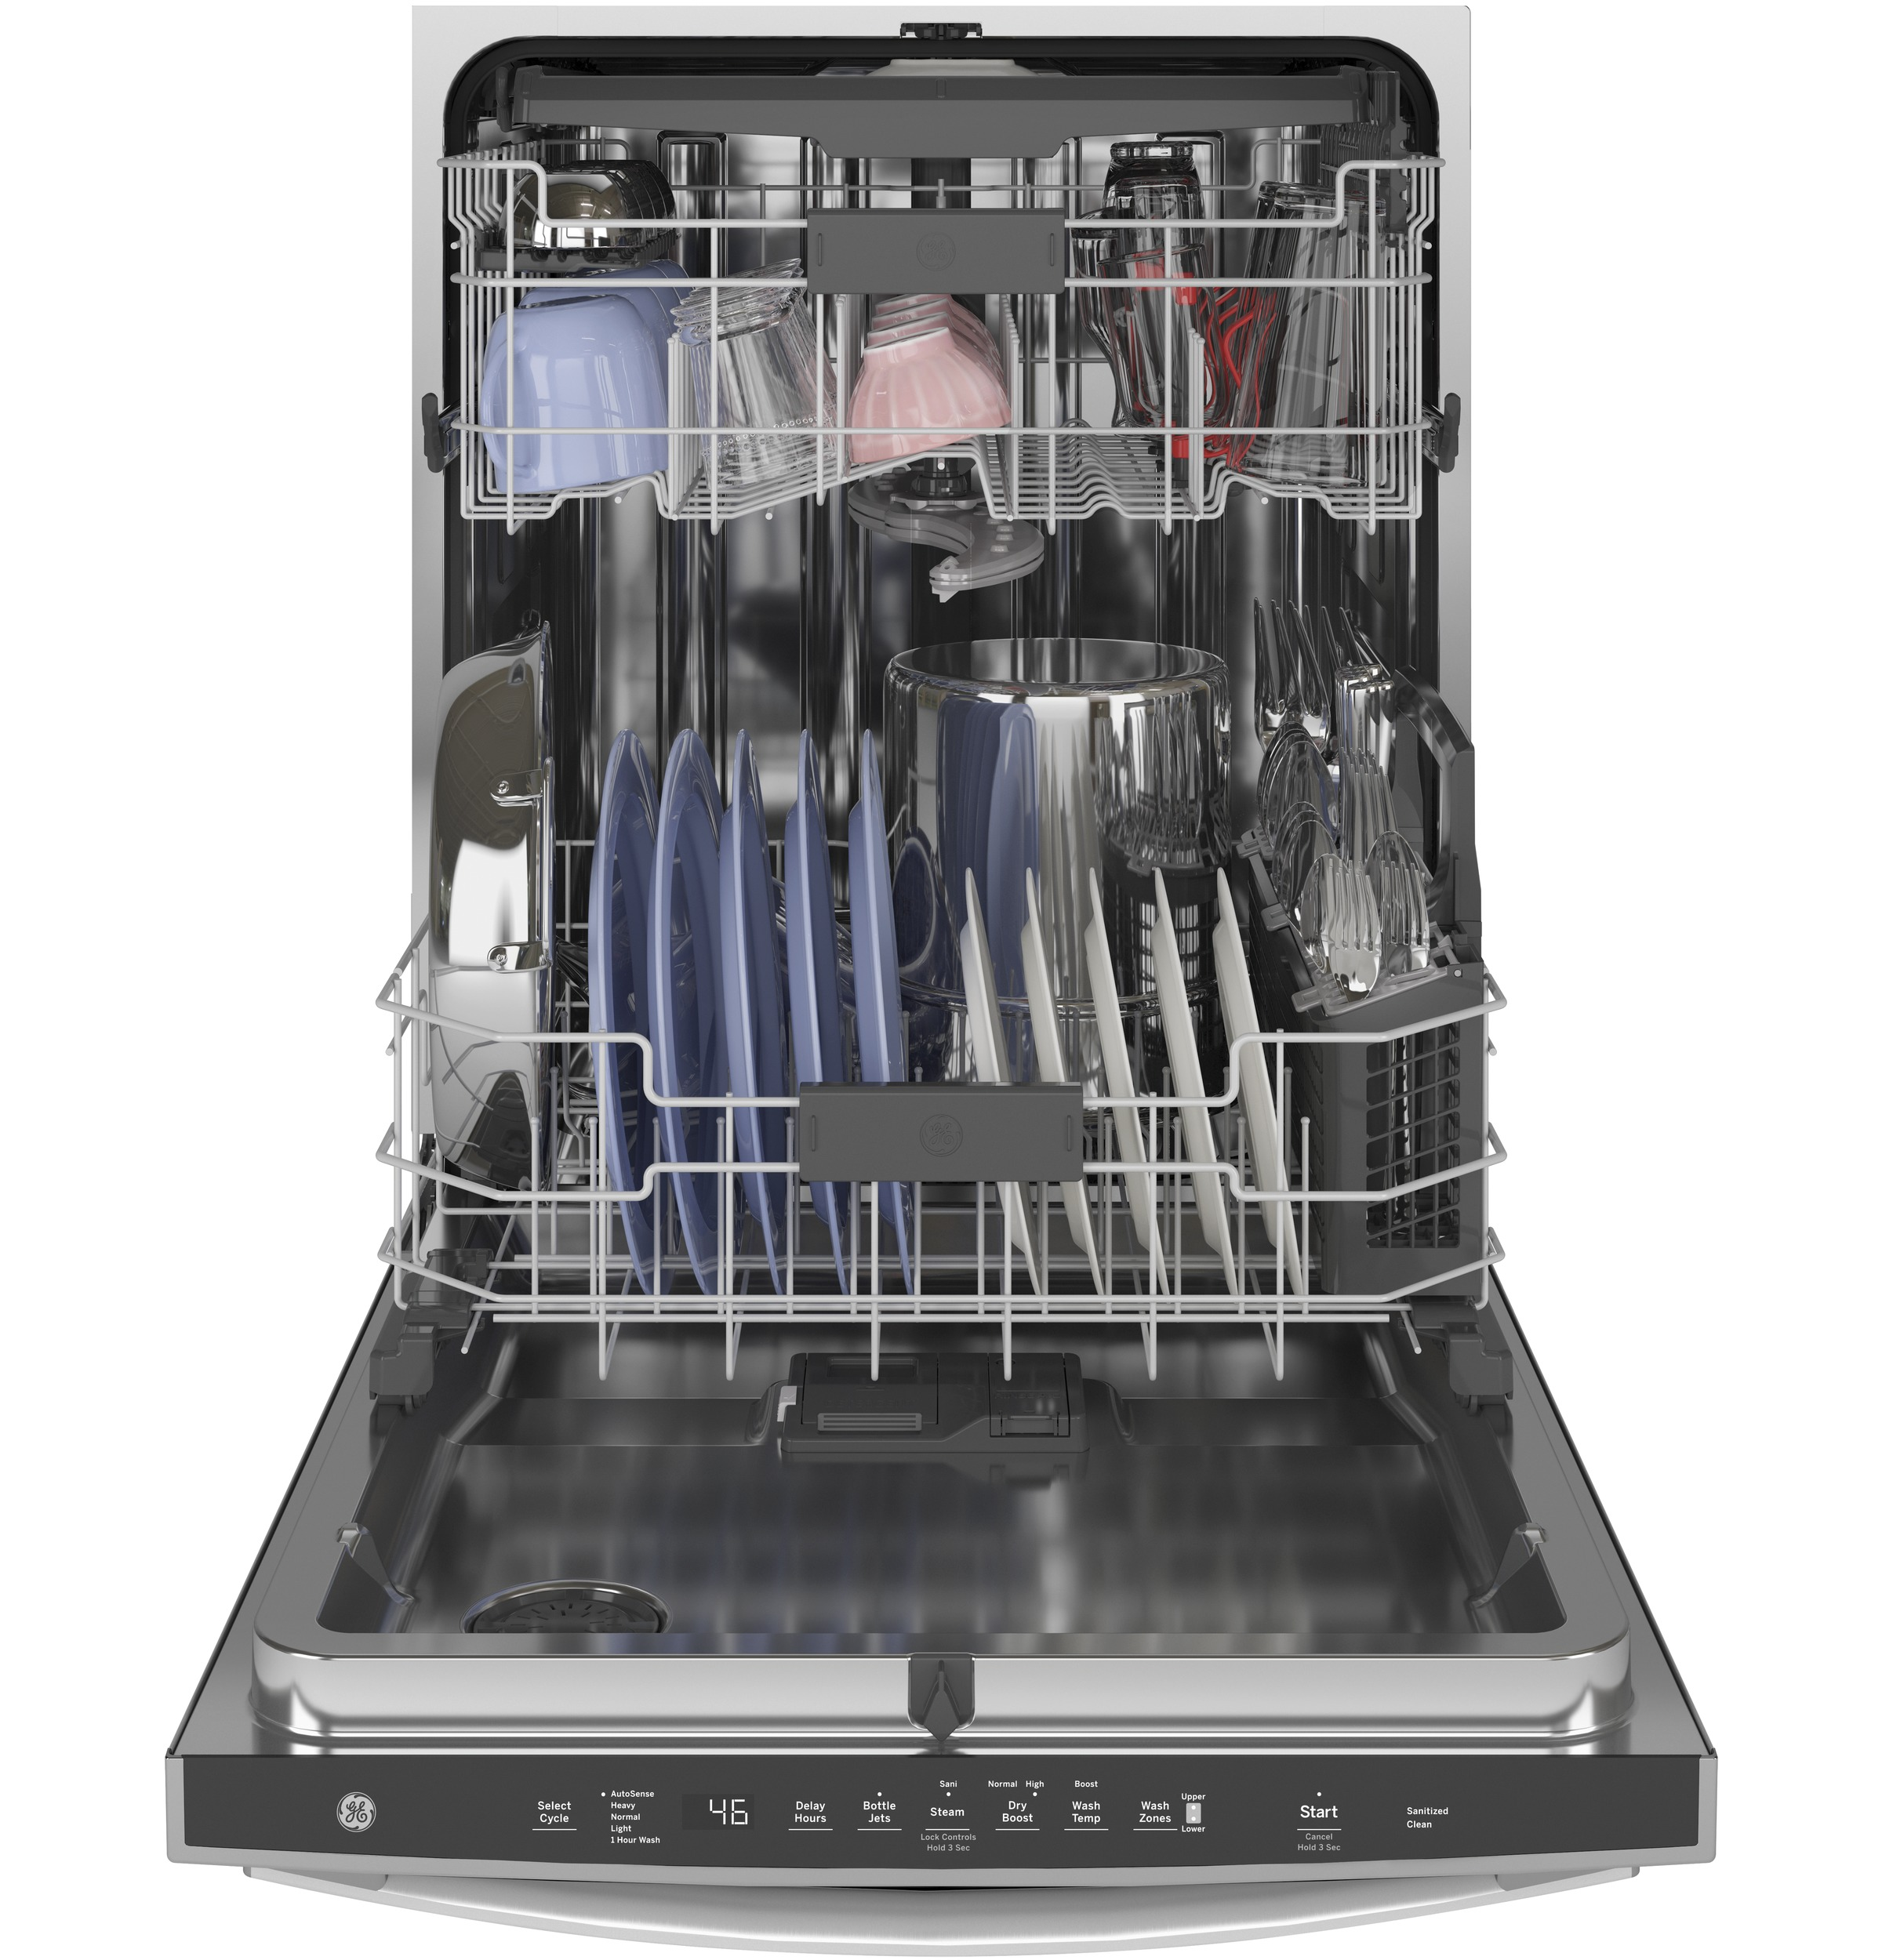 Model: GDP665SYNFS | GE GE® Stainless Steel Interior Dishwasher with Hidden Controls